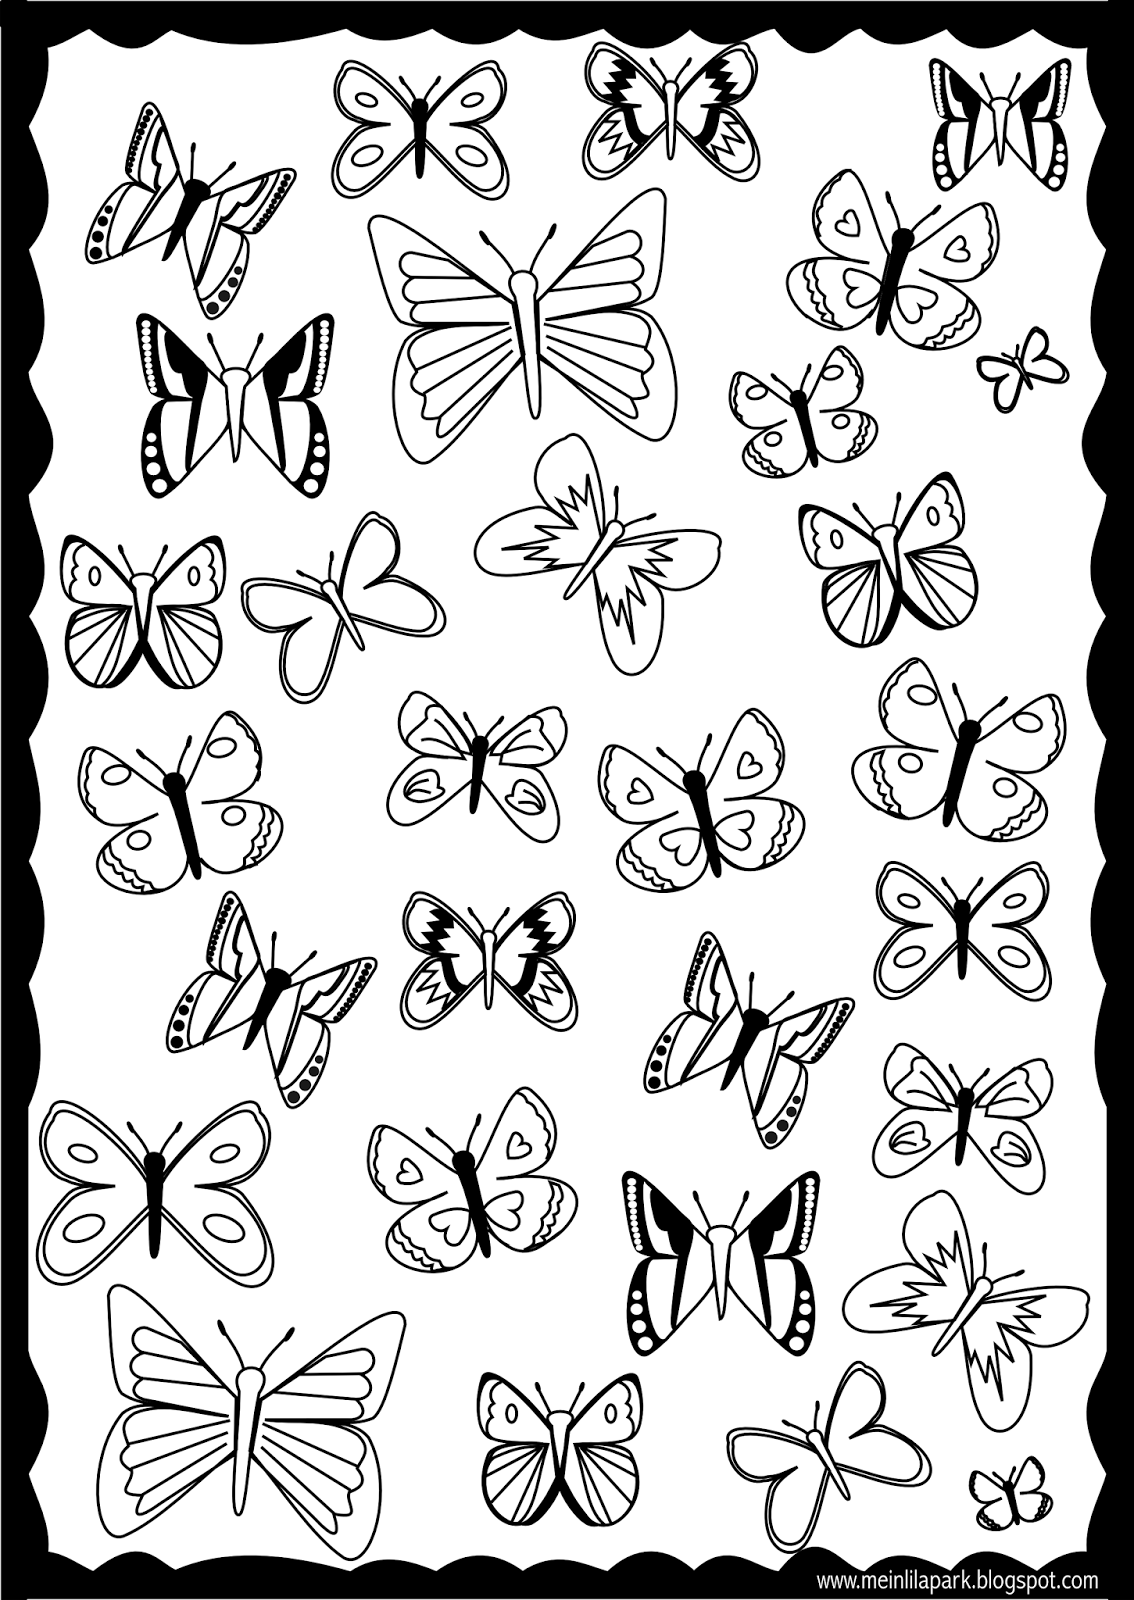 butterfly coloring pages free printable butterfly coloring pages team colors butterfly pages free coloring printable